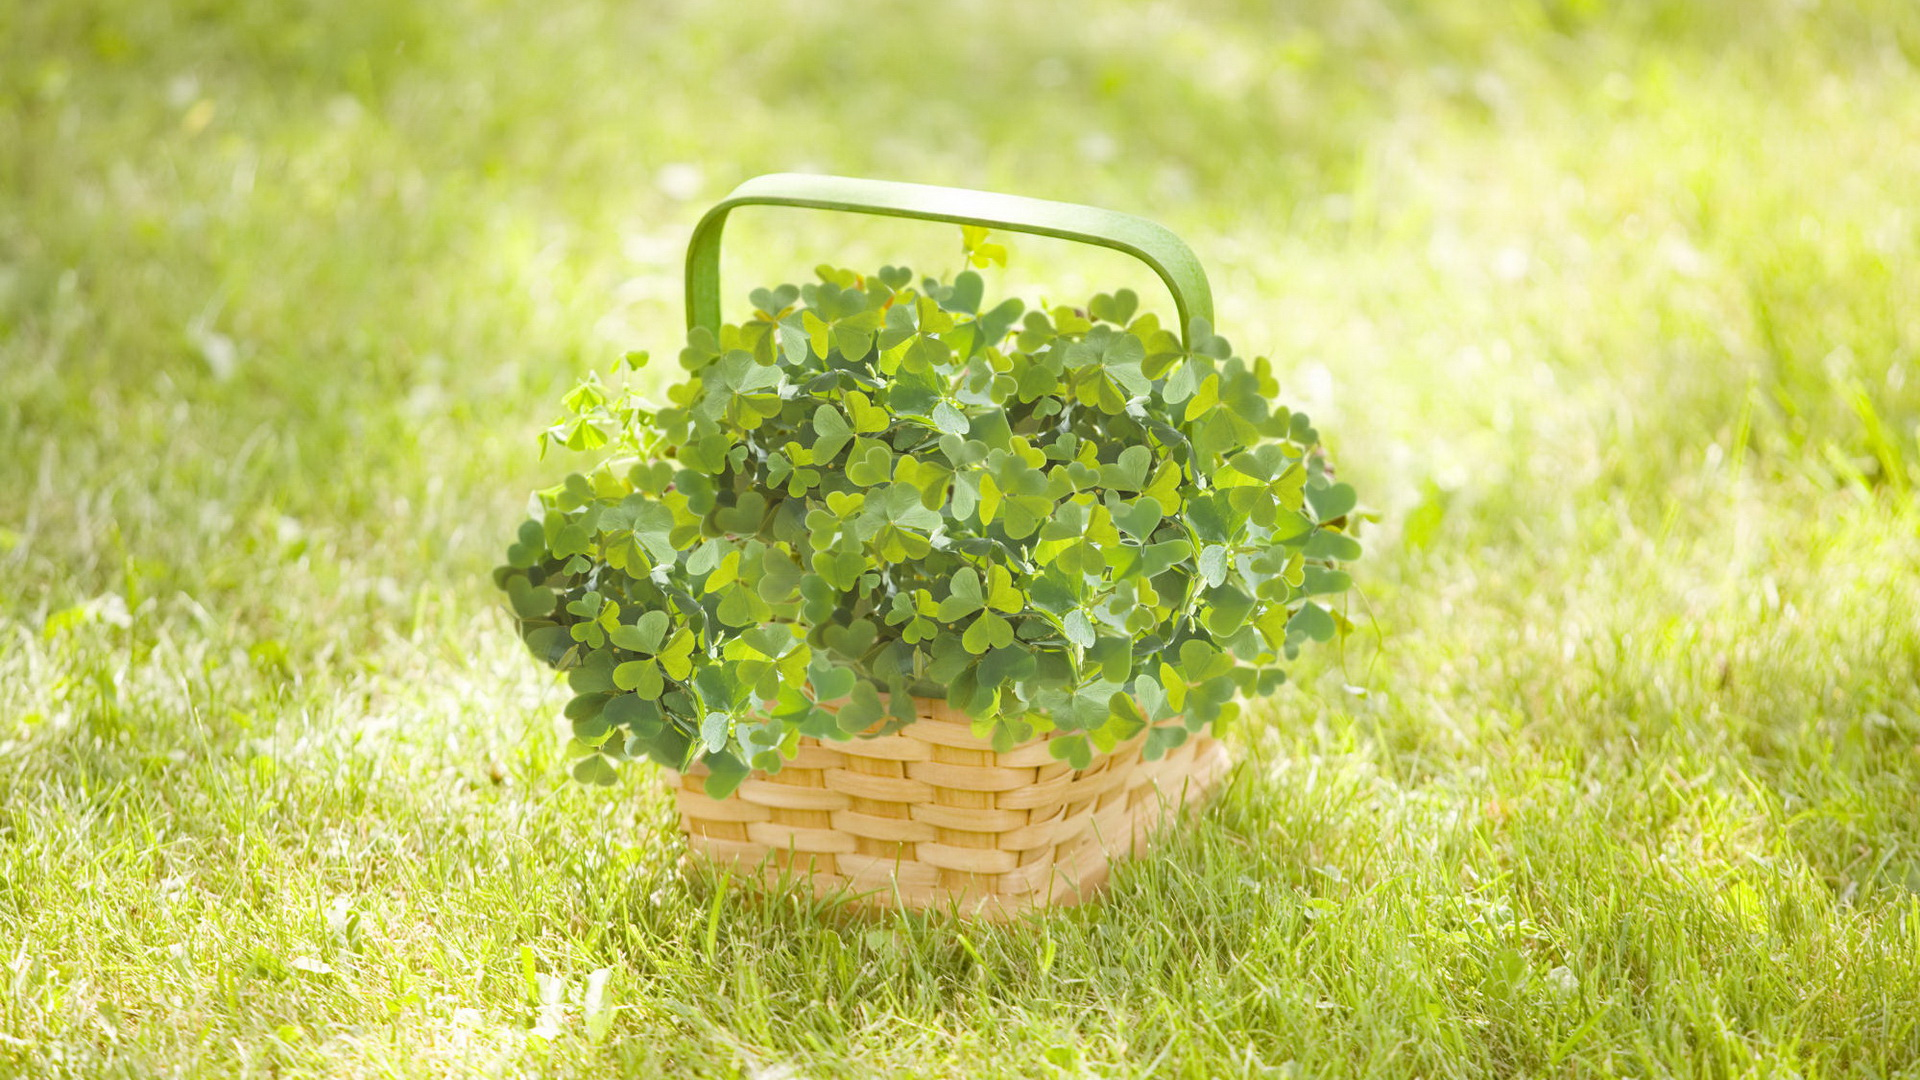 click to free download the wallpaper--Free Download Natural Scenery Picture - A Basket of Fresh Whitetip Clovers, Bring Them Home and Feel Good  1920X1080 free wallpaper download